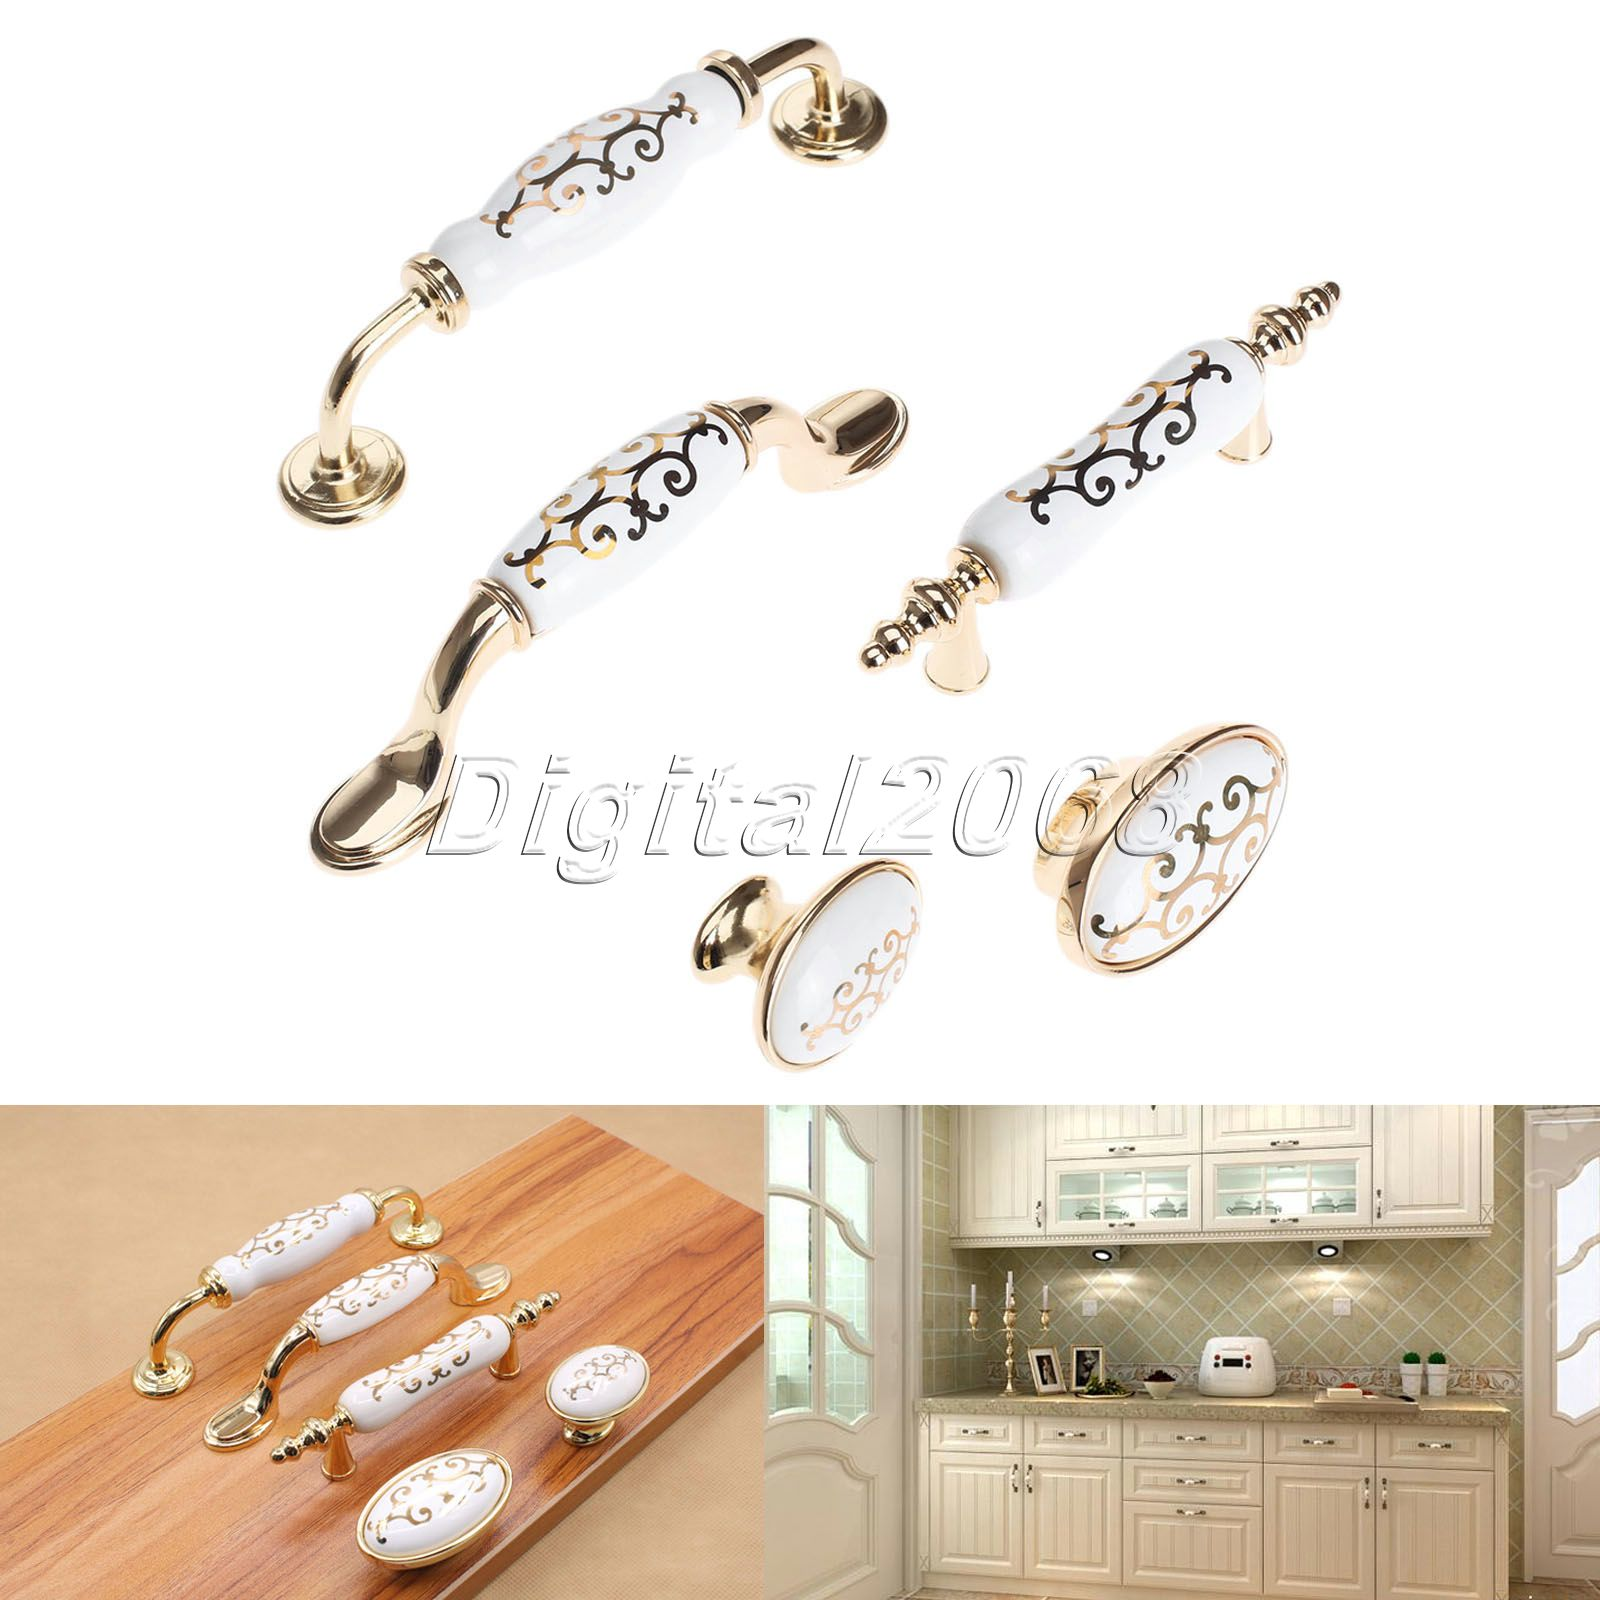 White Drawer Pull Knob Kitchen Cabinet Door Handles For Cabinet Wardrobe Cupboard Closet Drawer Furniture Hardware Accessories